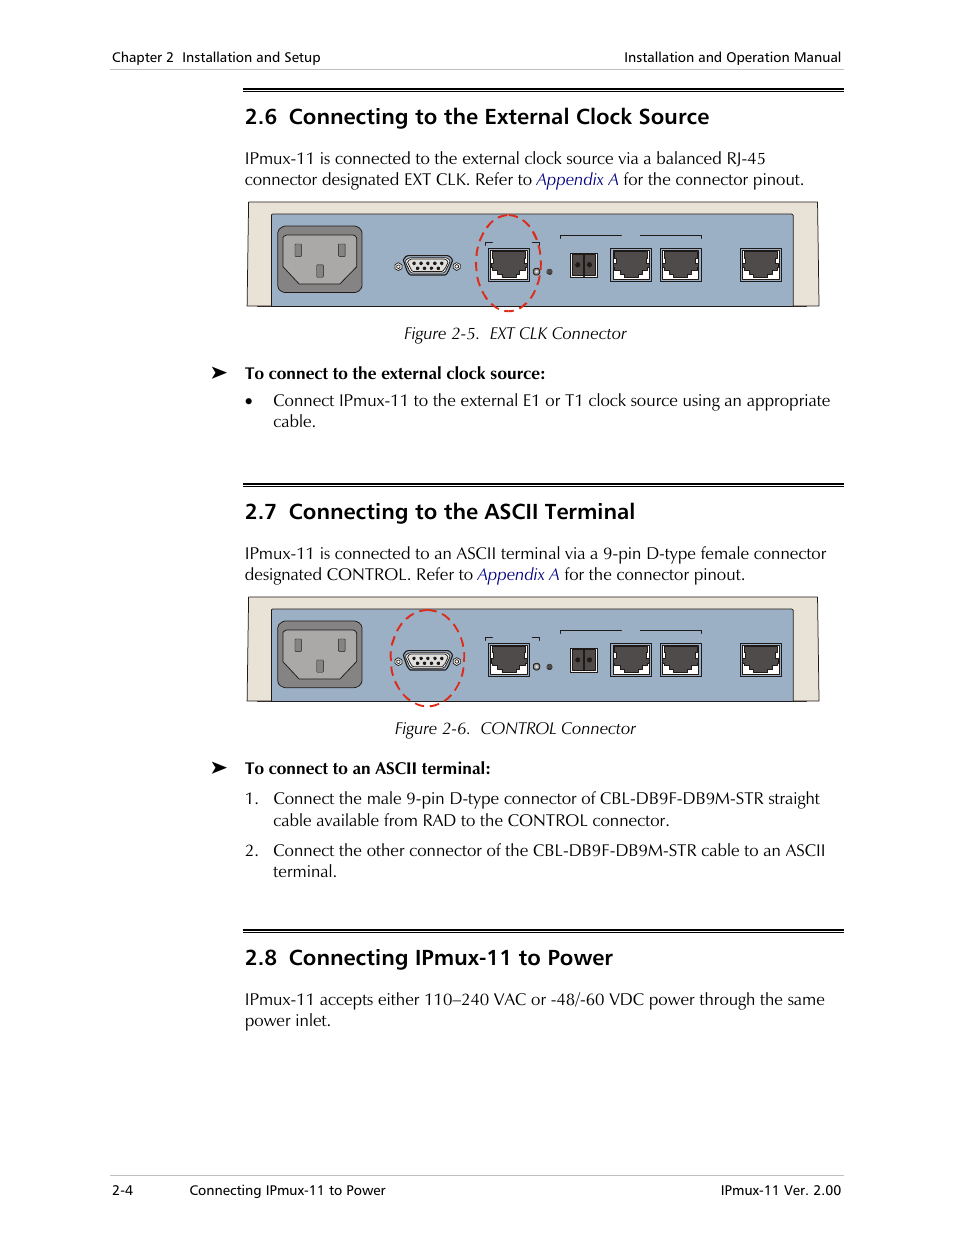 6 connecting to the external clock source, 7 connecting to